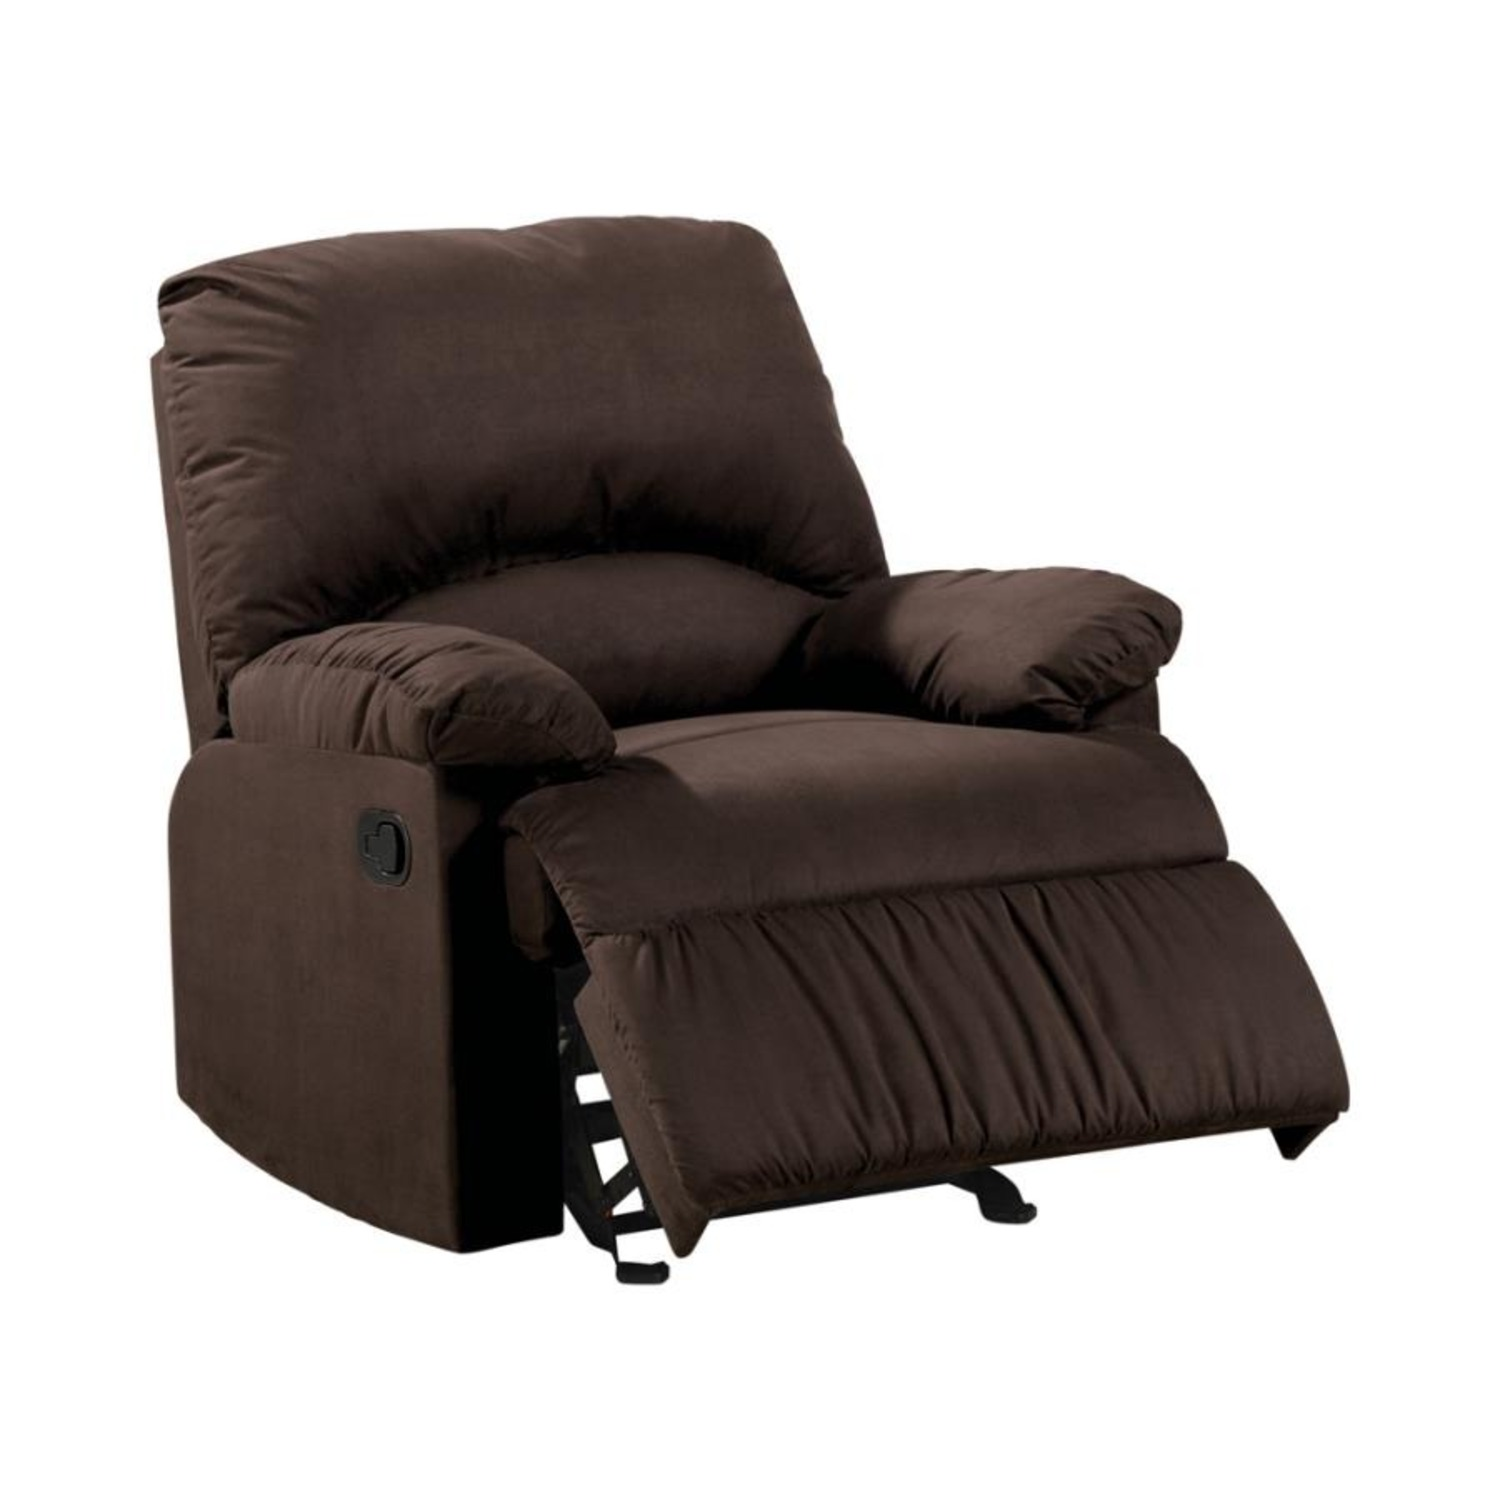 Glider Recliner In Chocolate Microfiber Upholstery - image-0